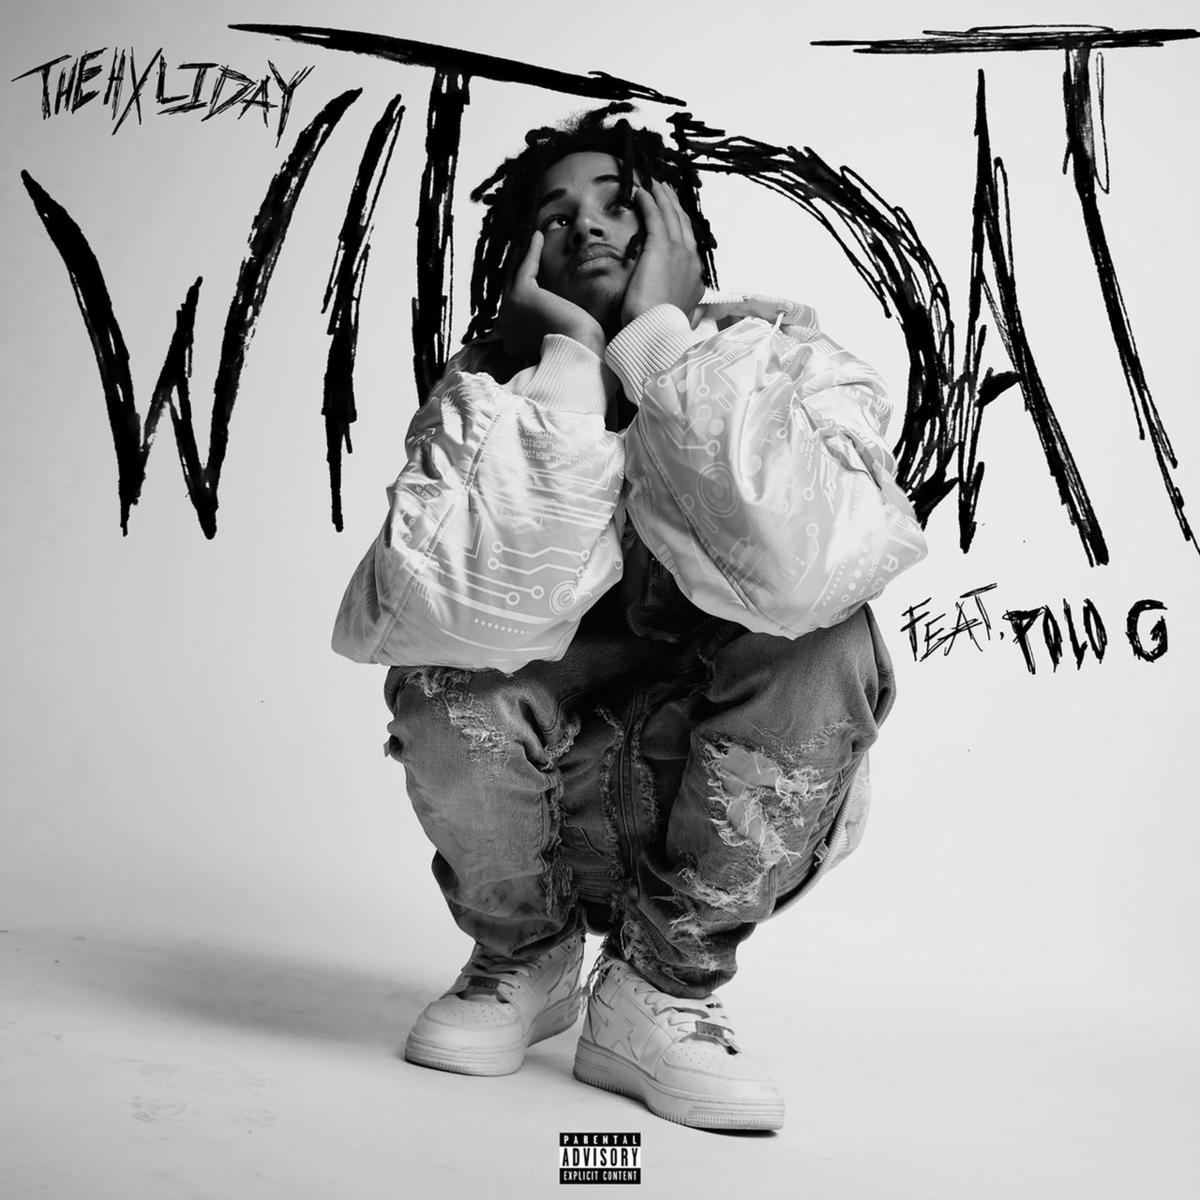 Wit Dat – [TheHxliday] ft. [Polo G]